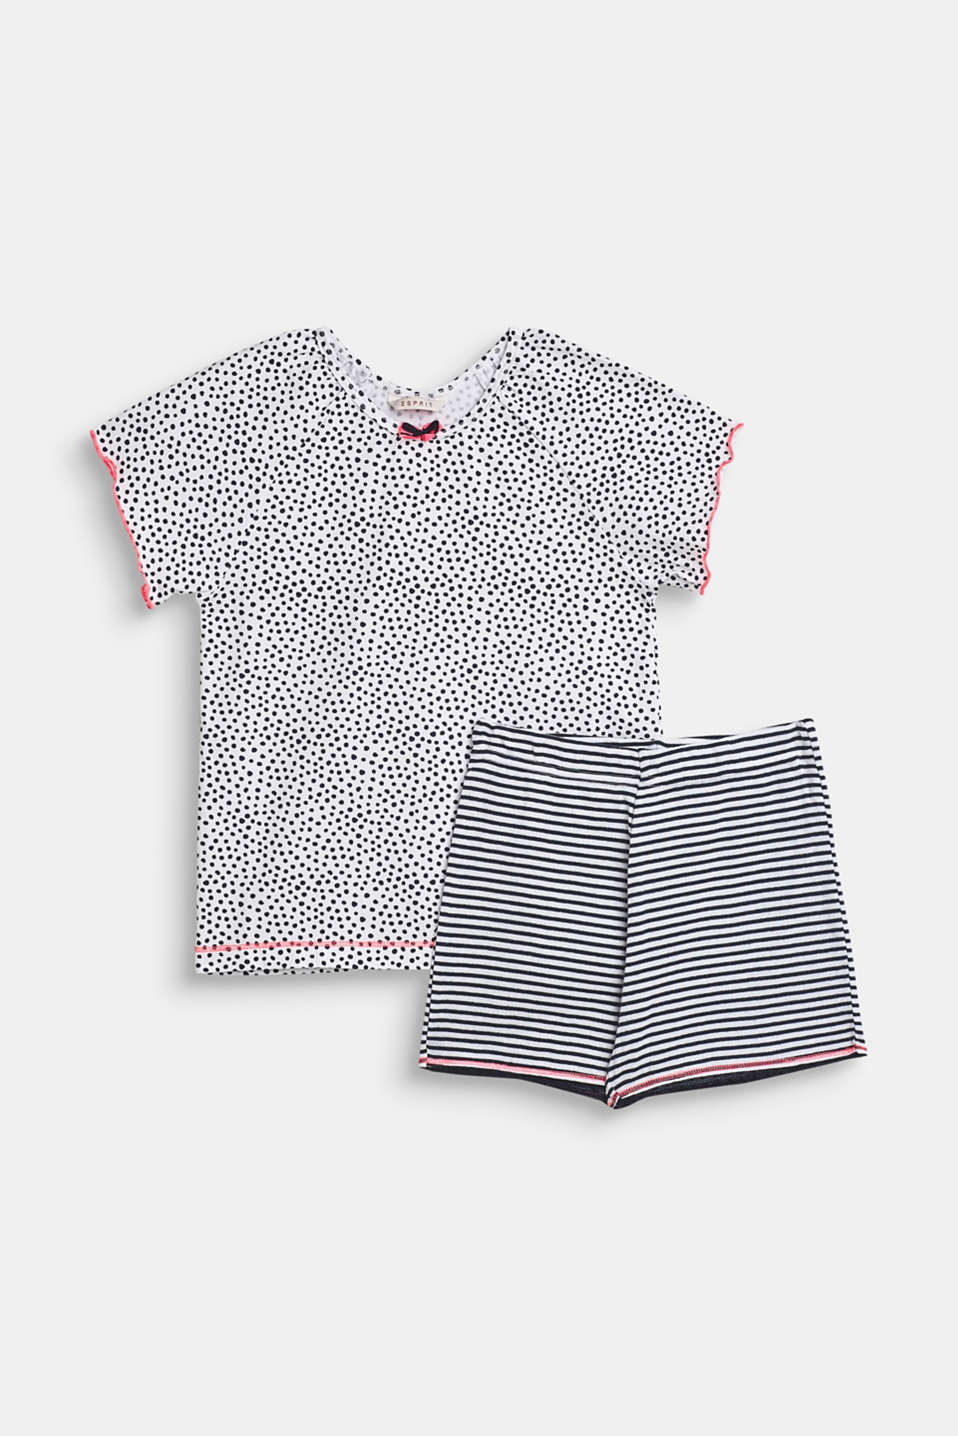 Esprit - Short jersey pyjamas with a mixed pattern